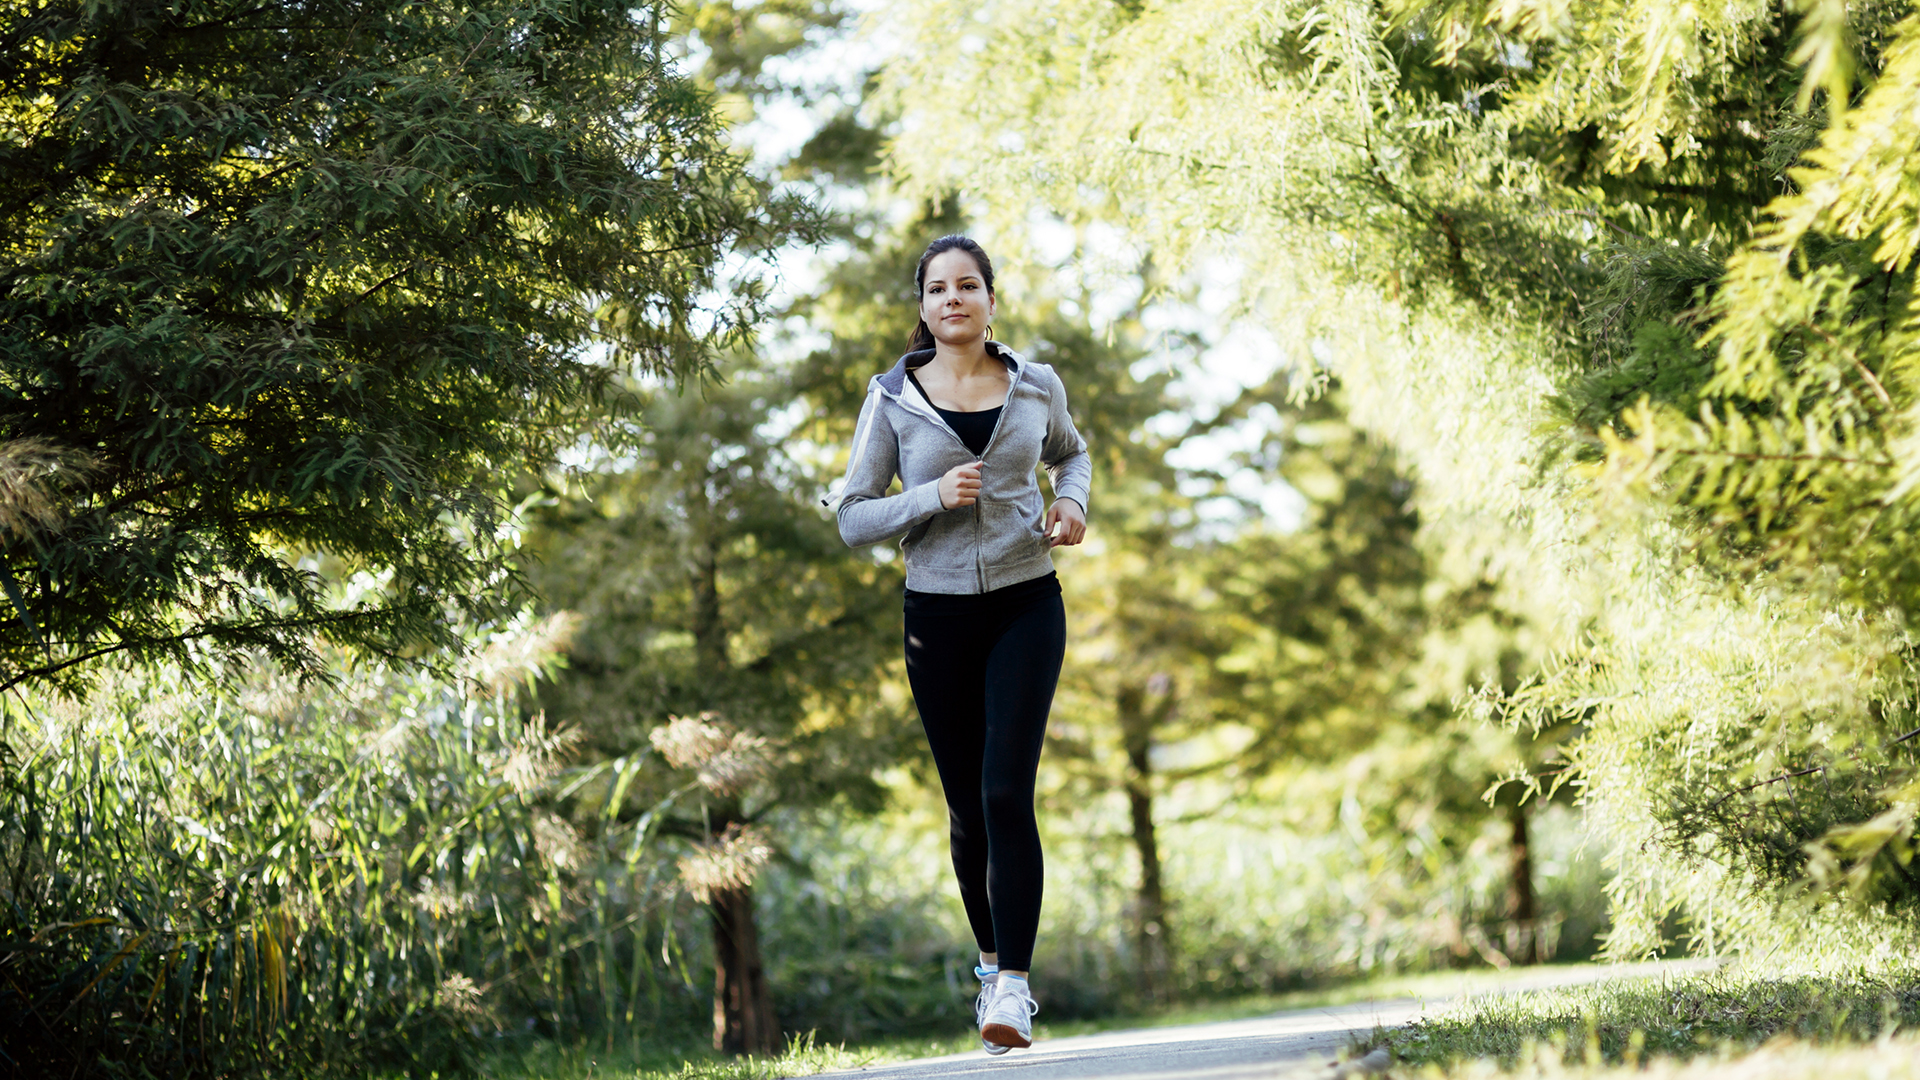 Image result for jogging woman park